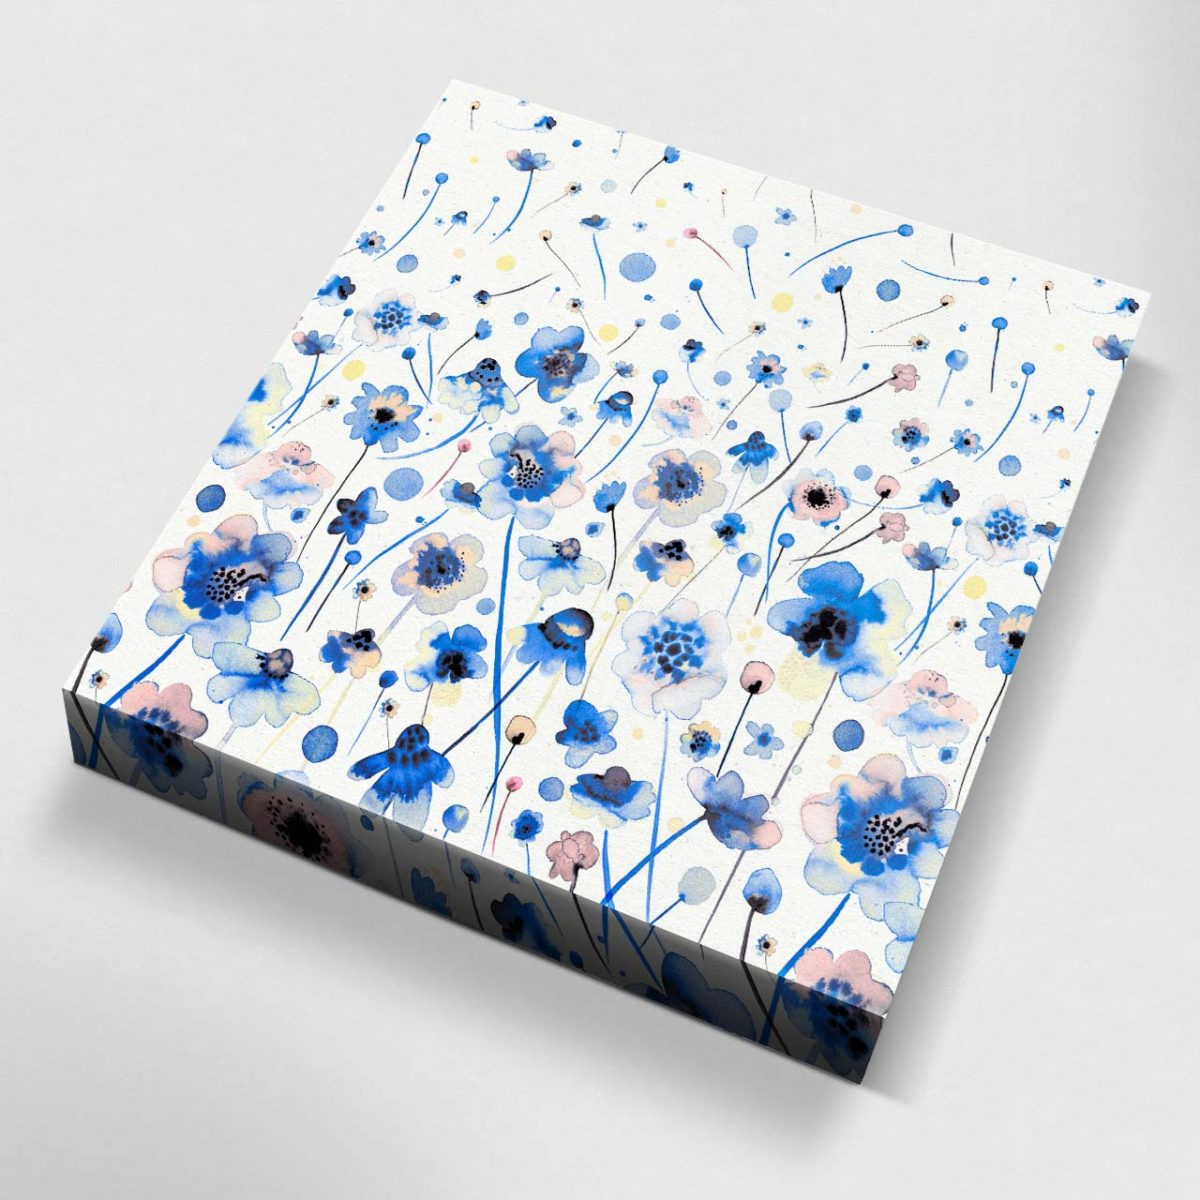 Ink Flowers Degraded Canvas Picture